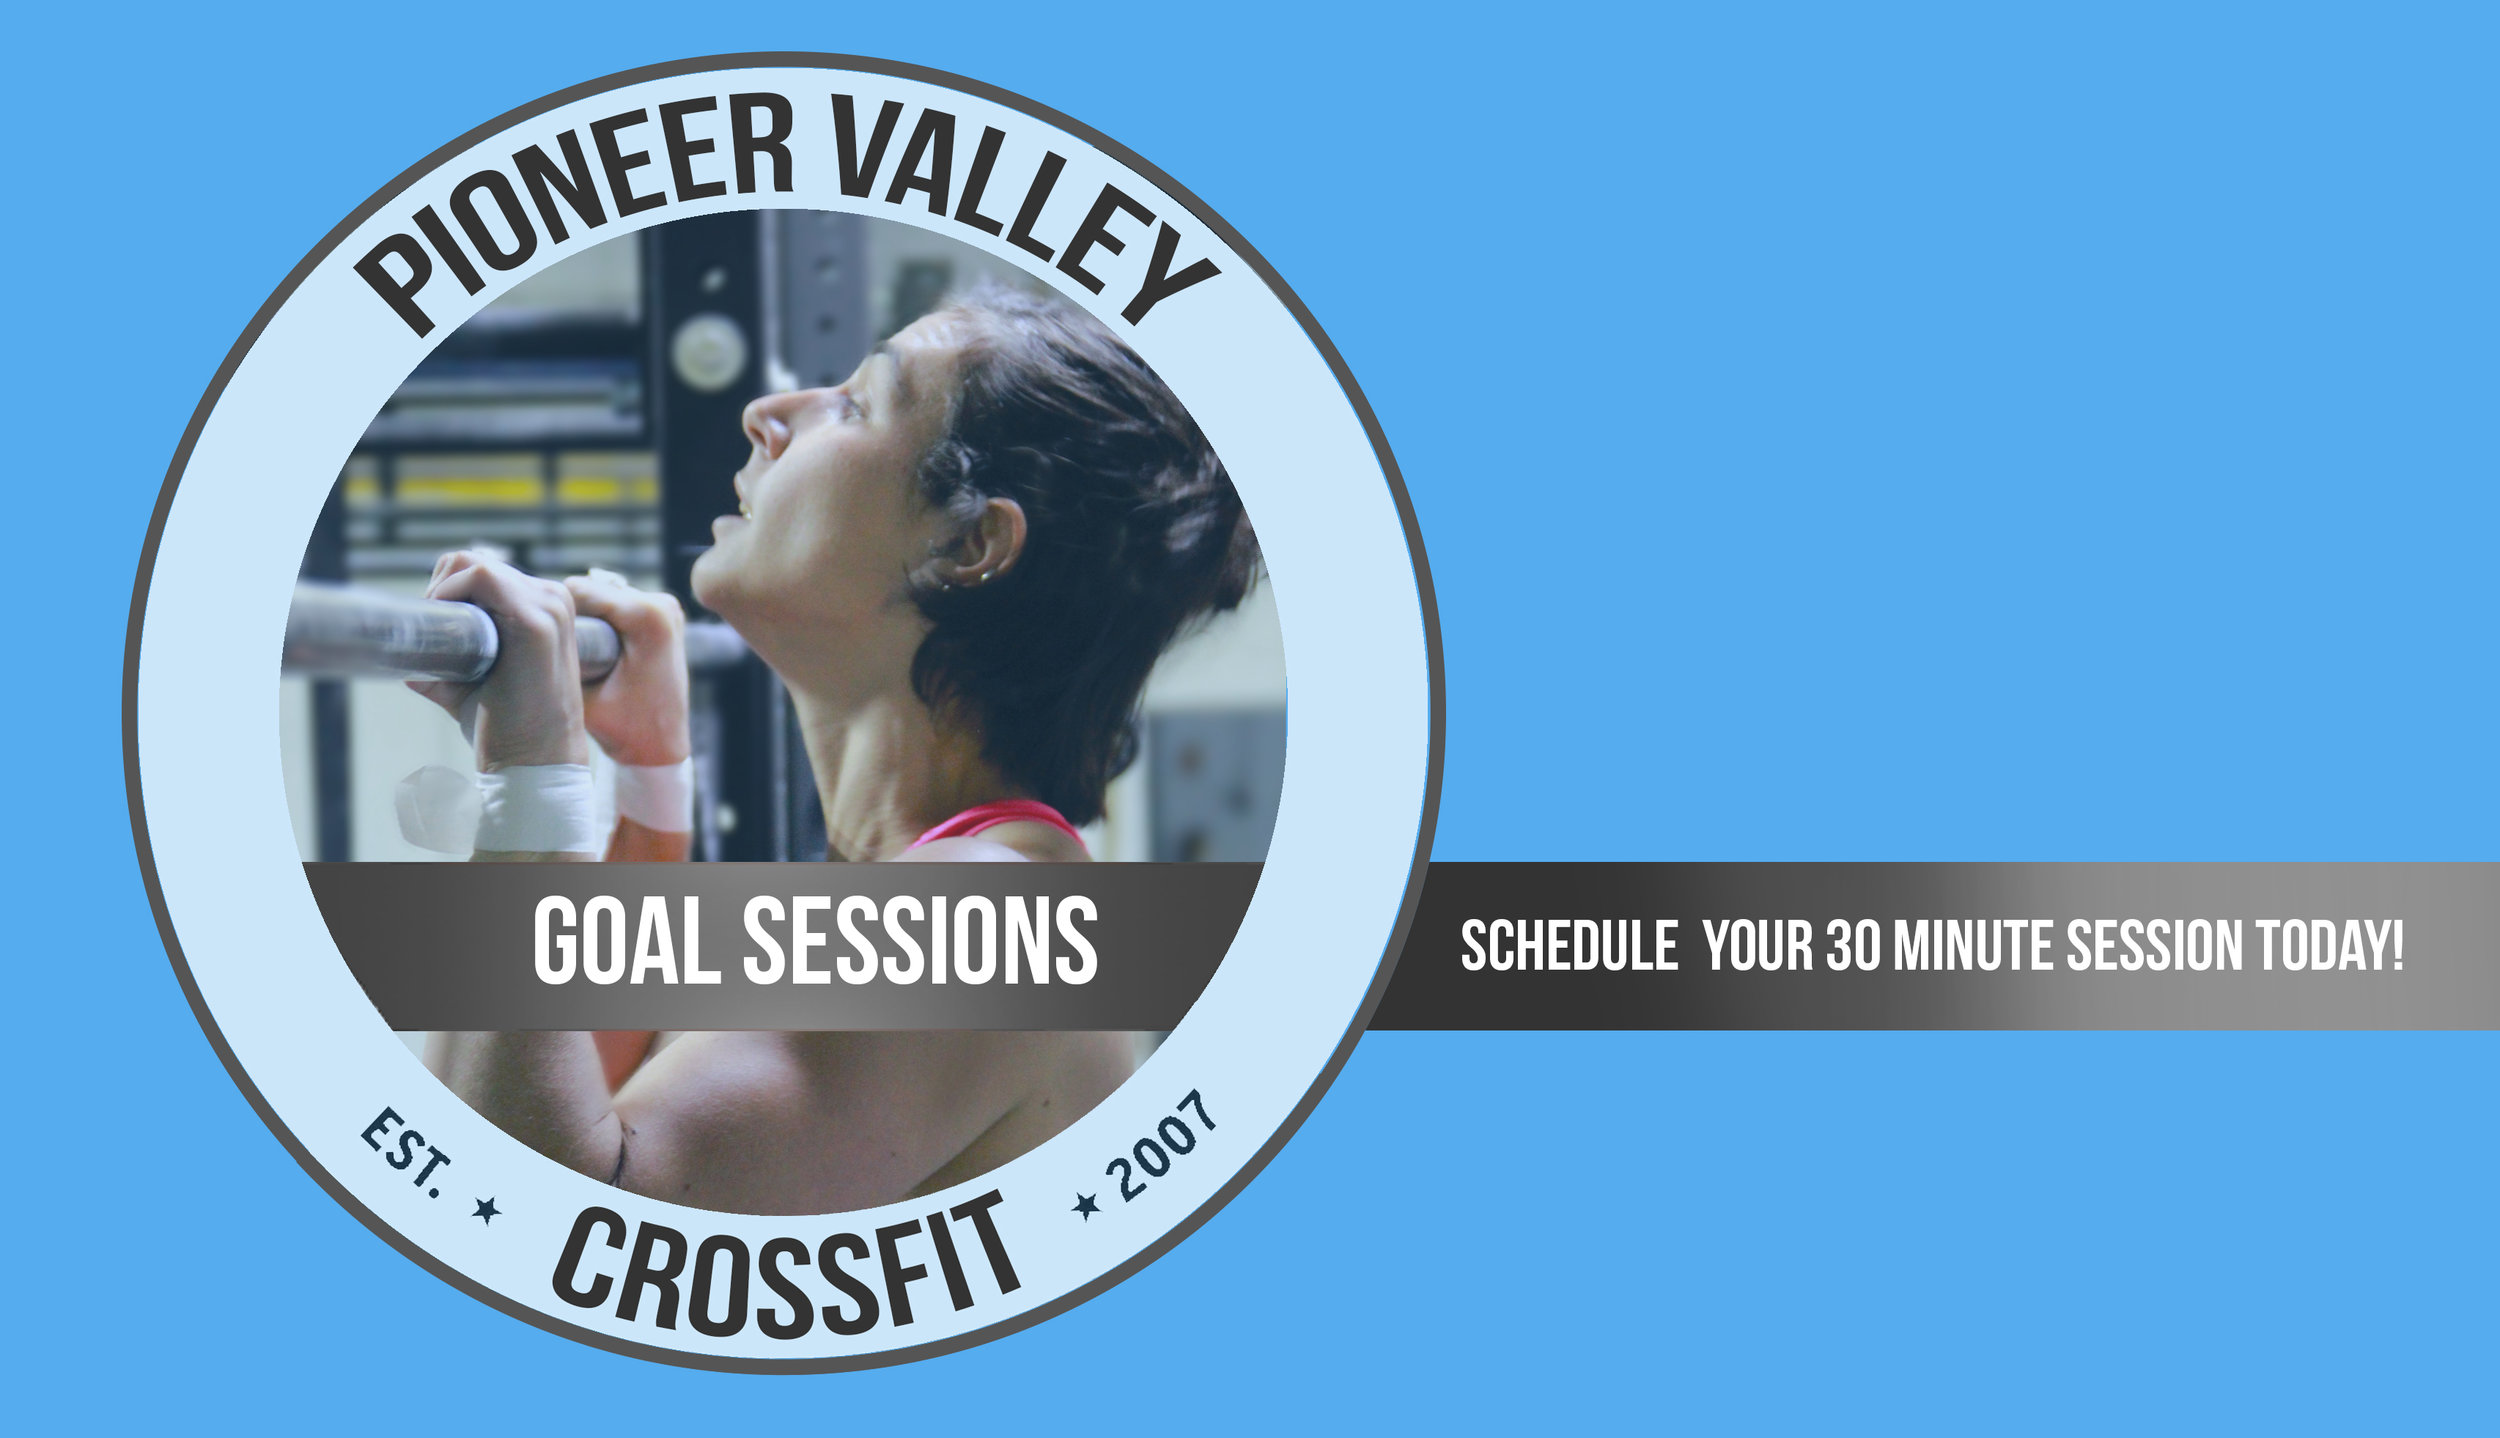 Did you know? You can schedule 30 minute Goal Setting Sessioins? You bring the goals, we'll take care of the rest!😉s